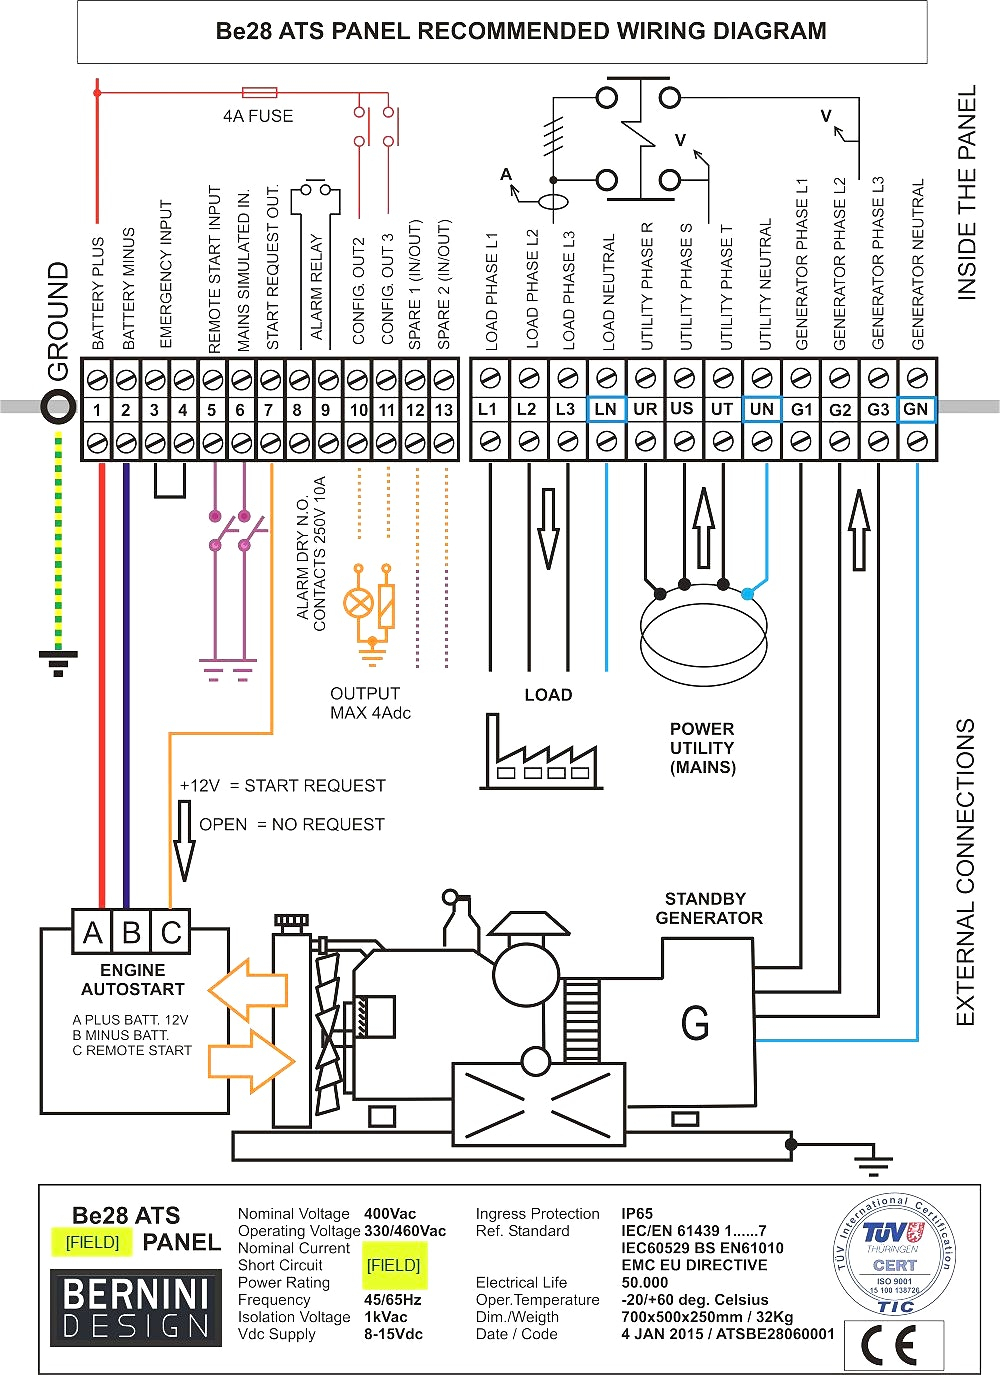 generac generator transfer switch wiring diagram Collection-generac whole house transfer switch wiring diagram gallery rh metroroomph Generac Generator Wiring 14Kw Generac 20-g